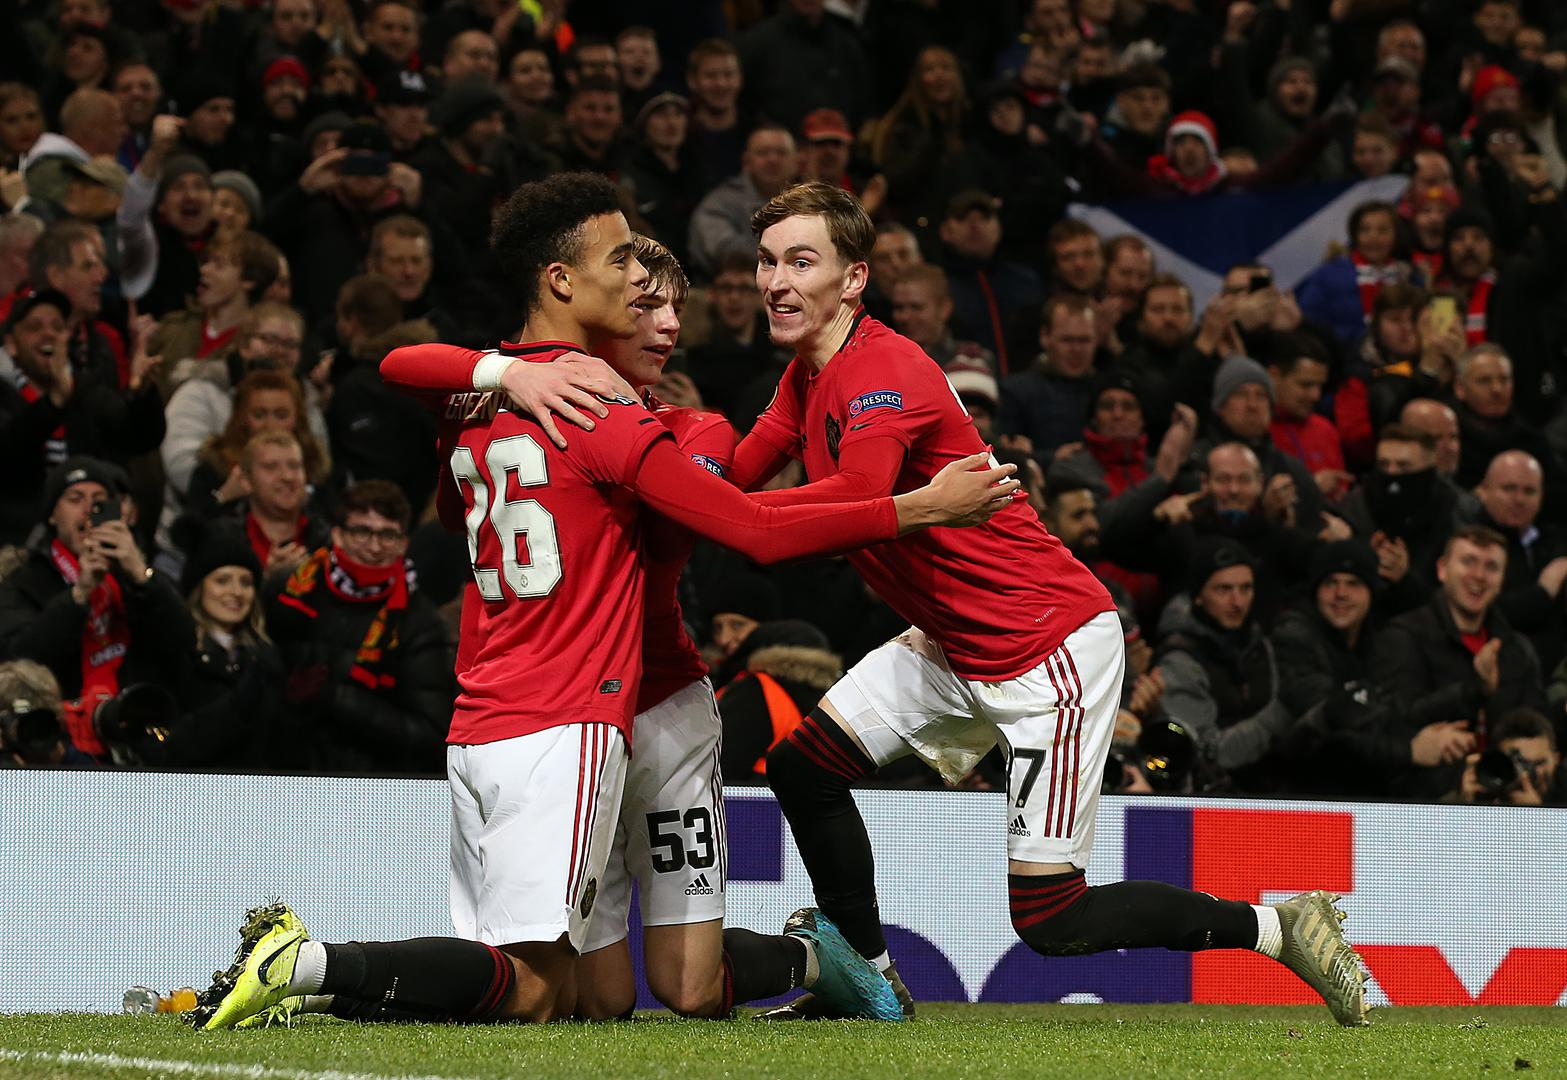 United celebrate Mason Greenwood's first goal against AZ Alkmaar.